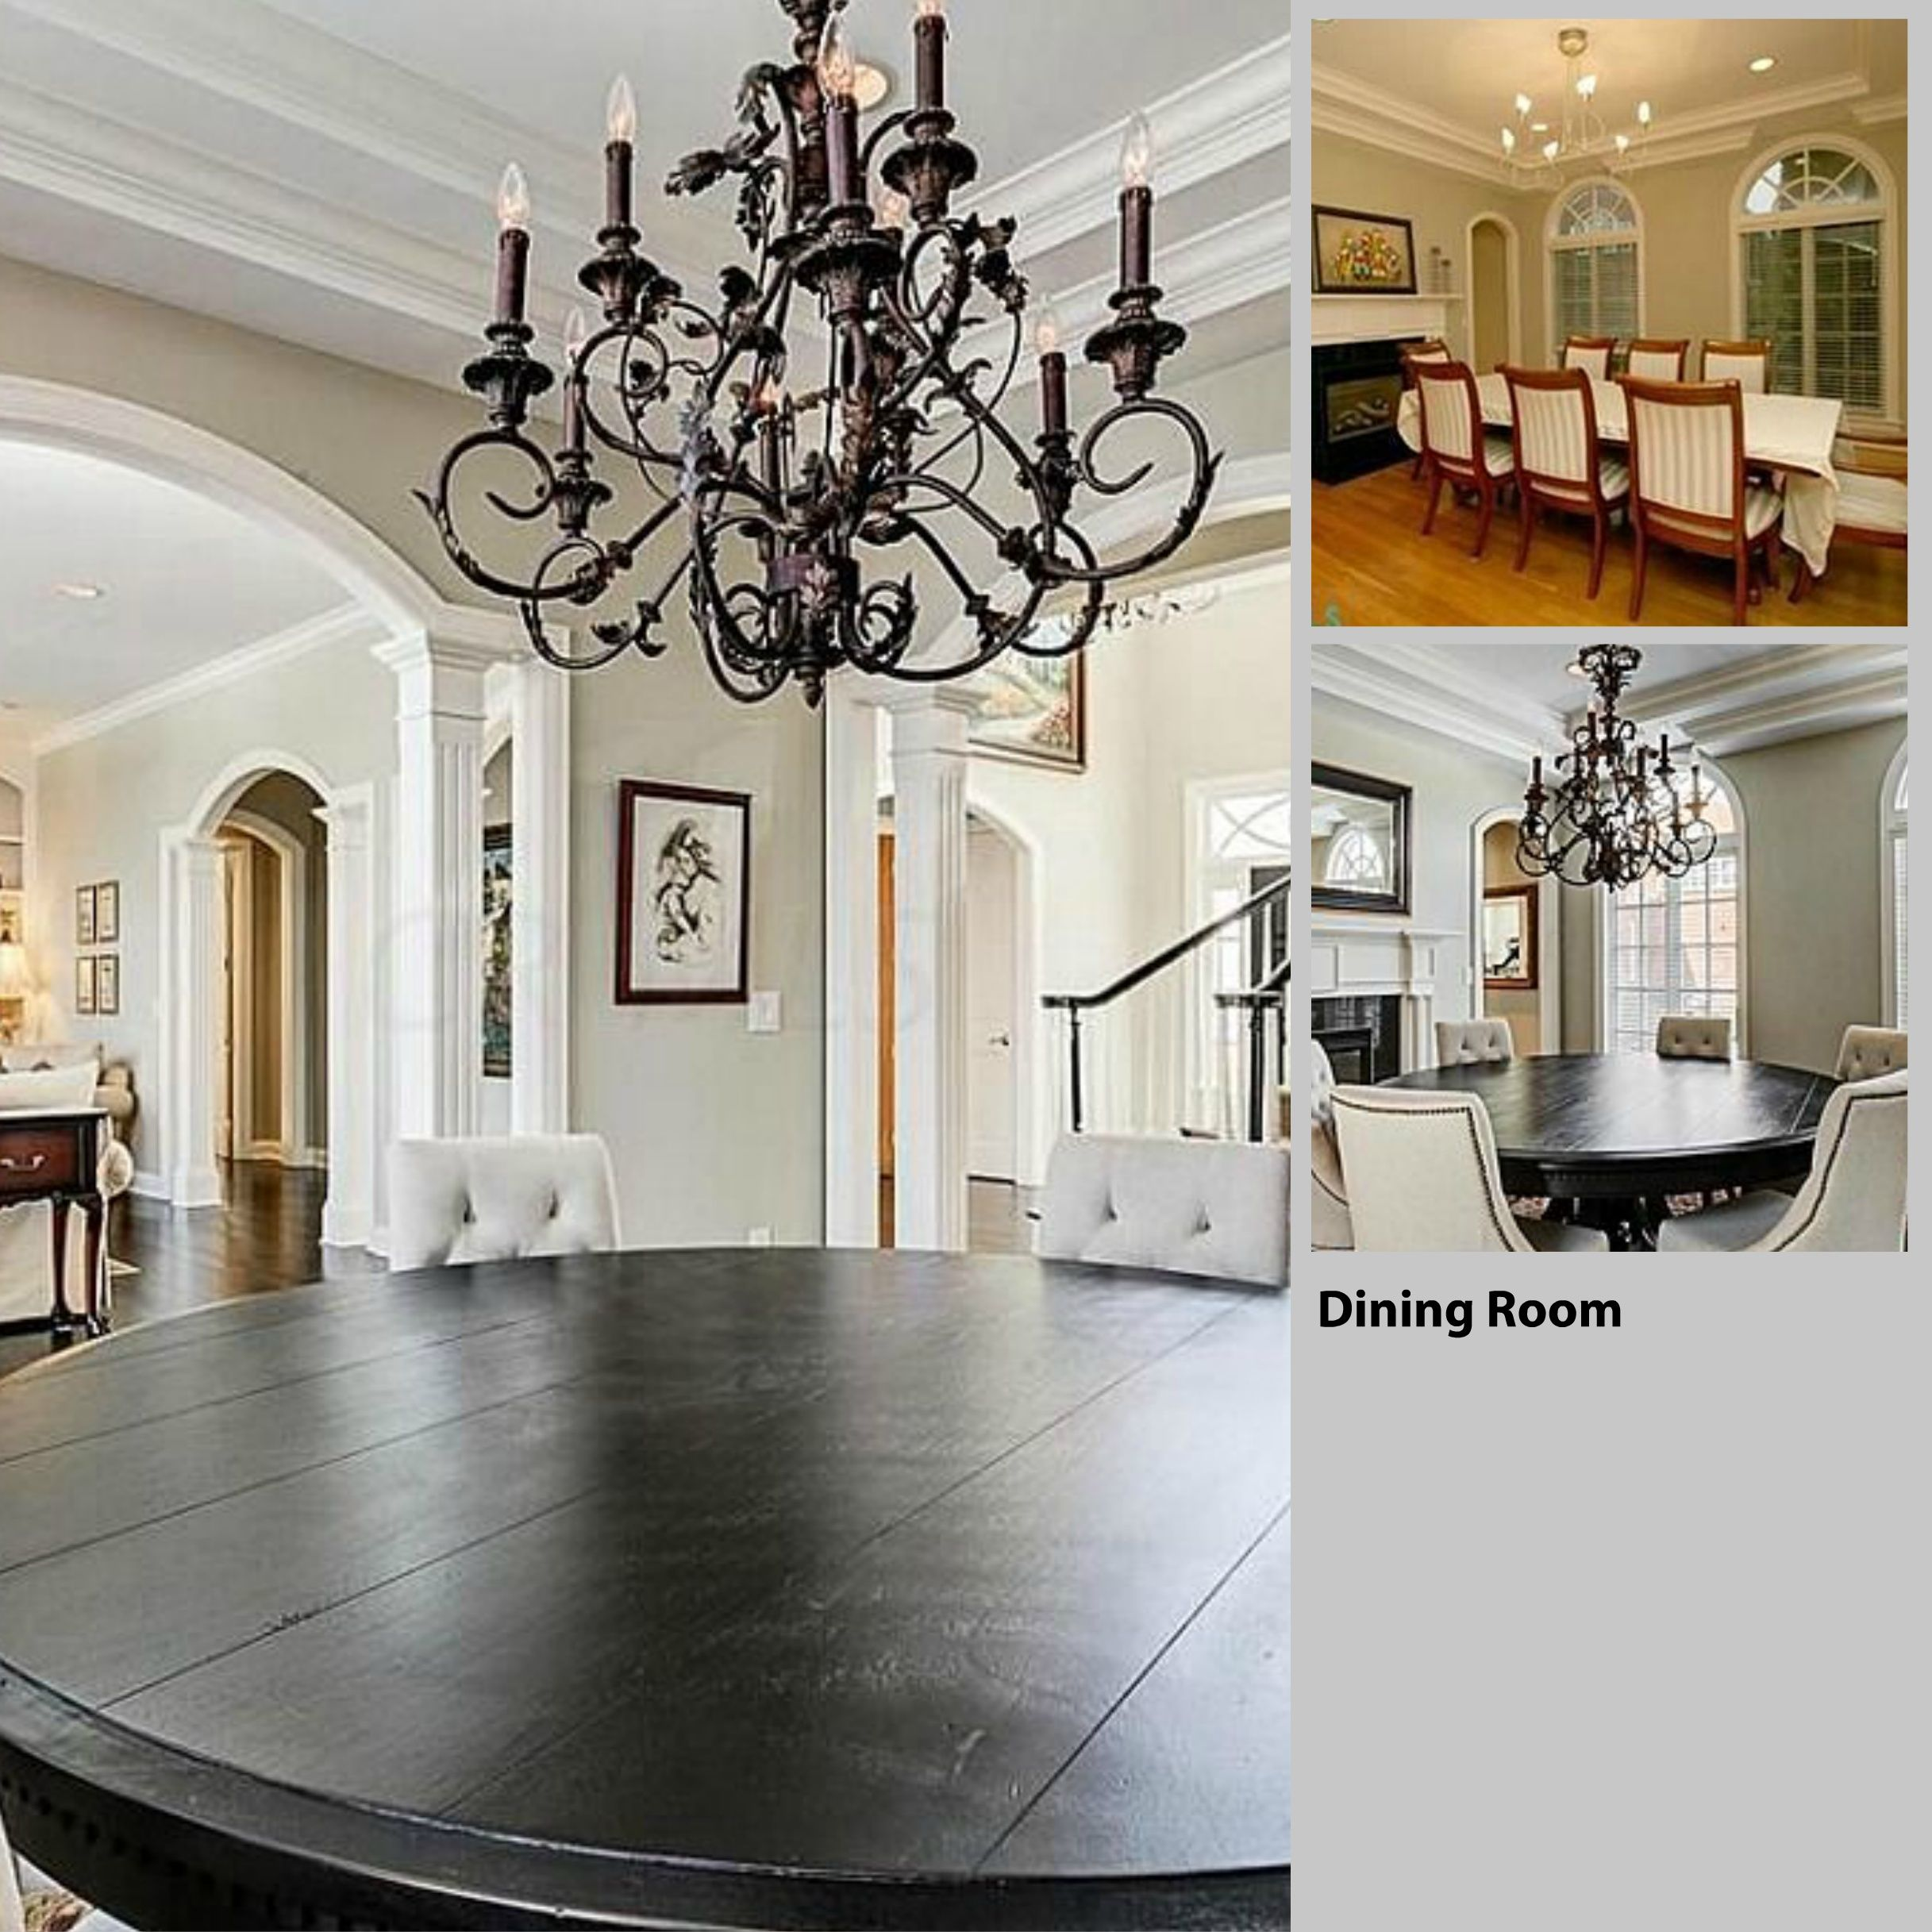 Dining Room -before And After- Restoration Hardware And